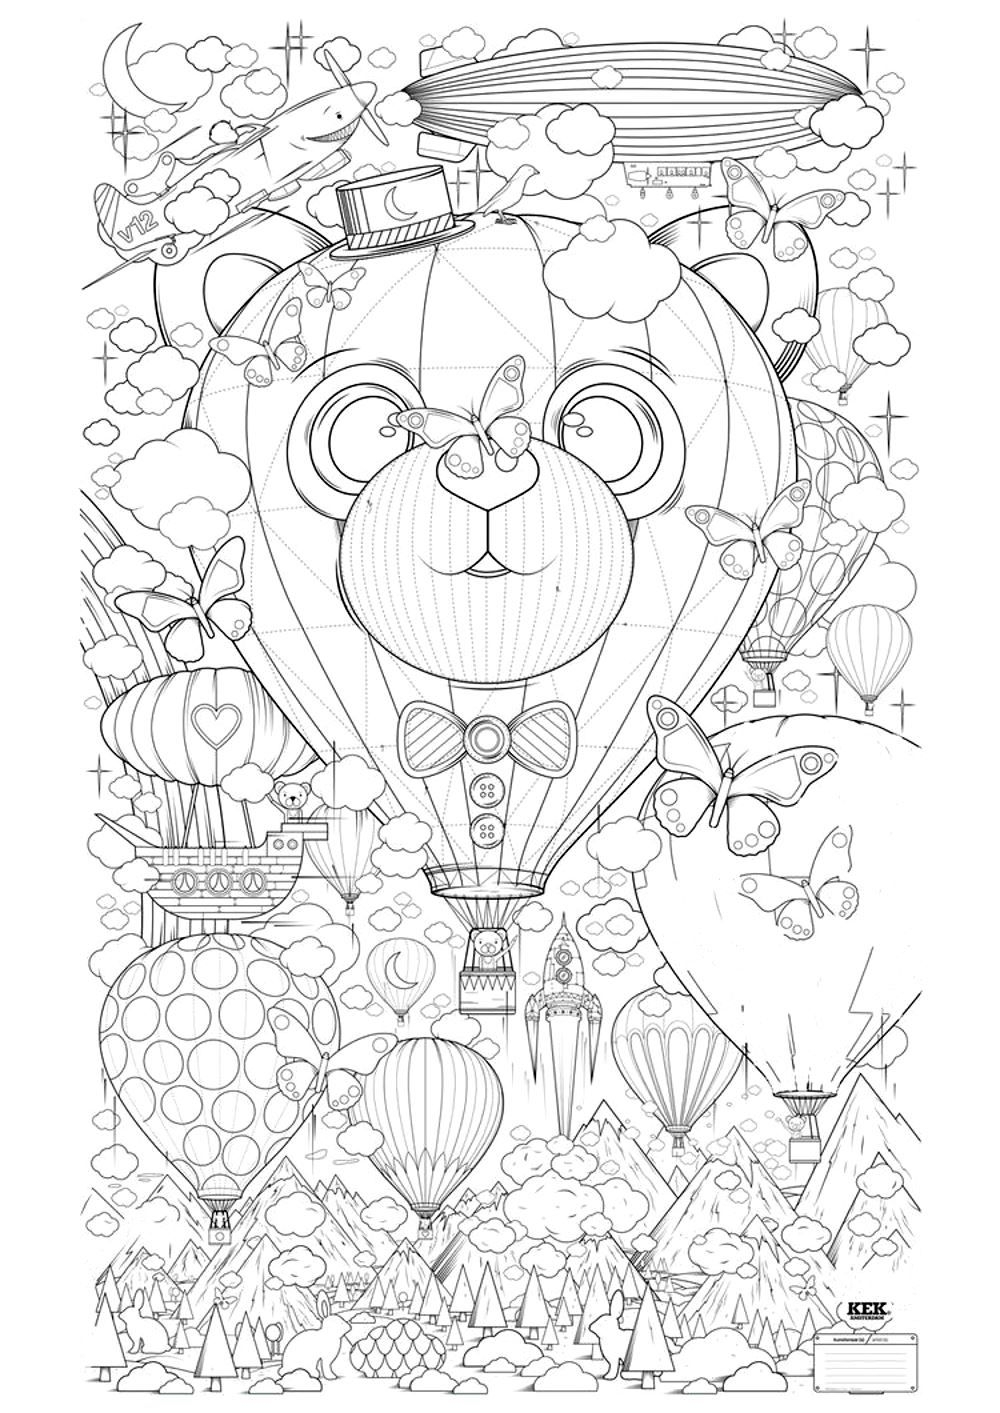 Printable Printable Hot Air Balloon Coloring Pages for Kids Free Printable Of Hot Air Balloon Coloring Page Collection